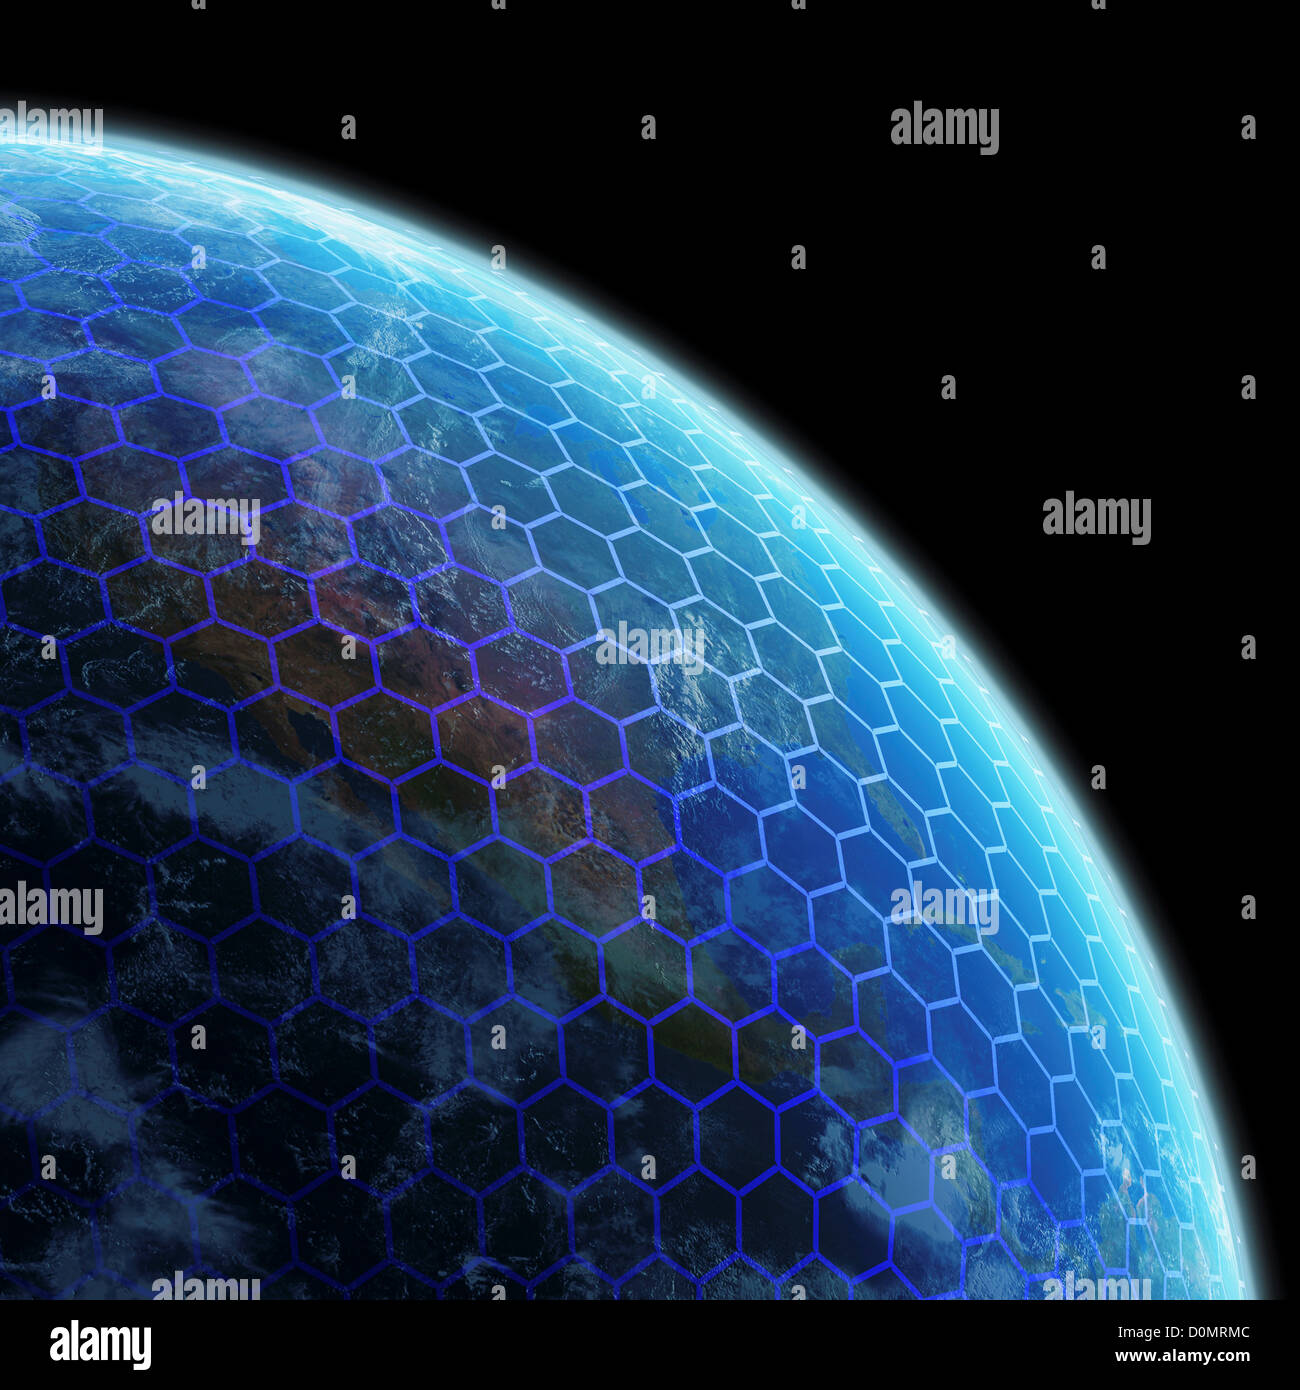 Wire frame model layered over planet earth Stock Photo: 52088748 - Alamy